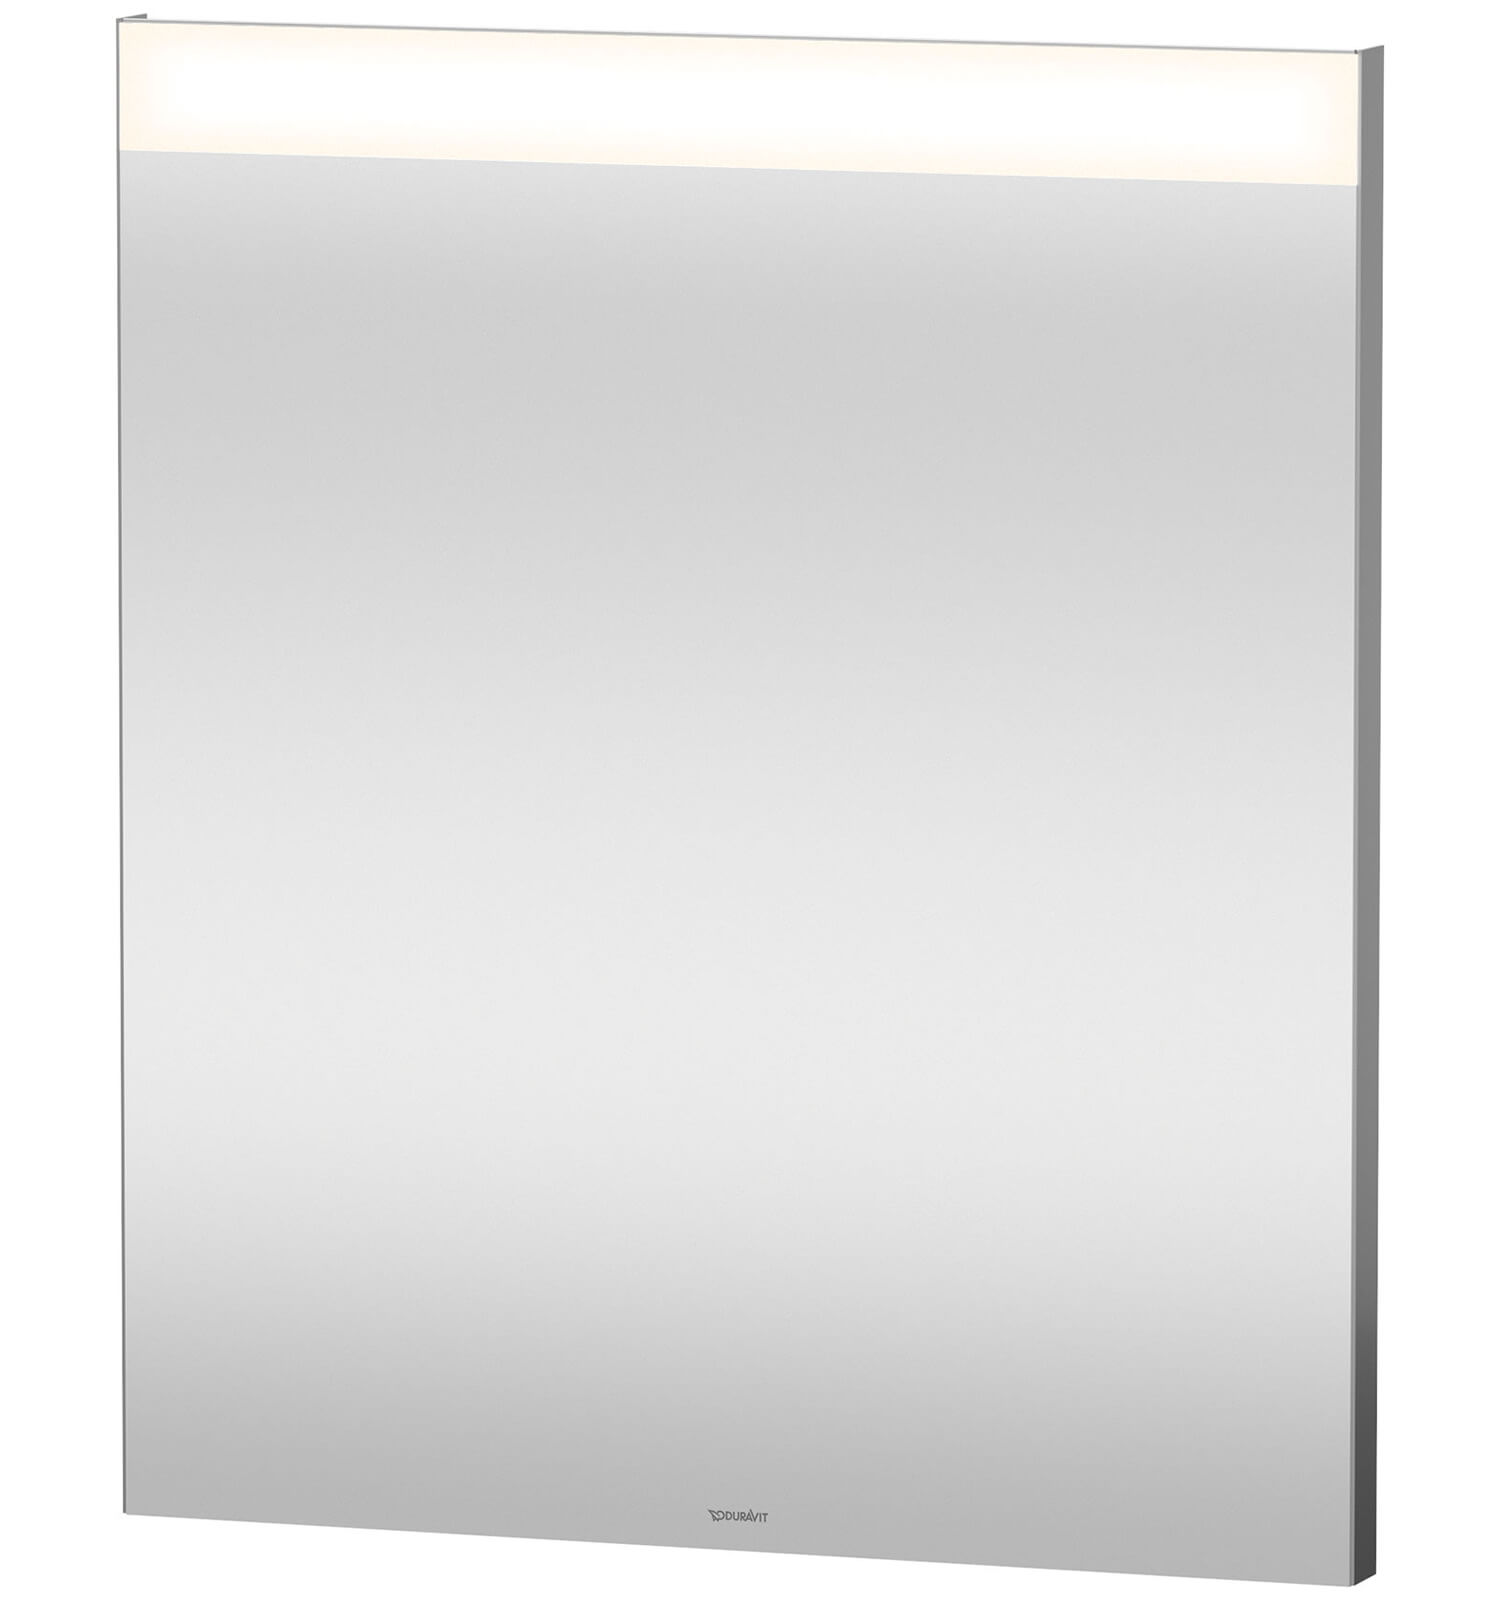 Duravit mirror with LED lighting Better-Version